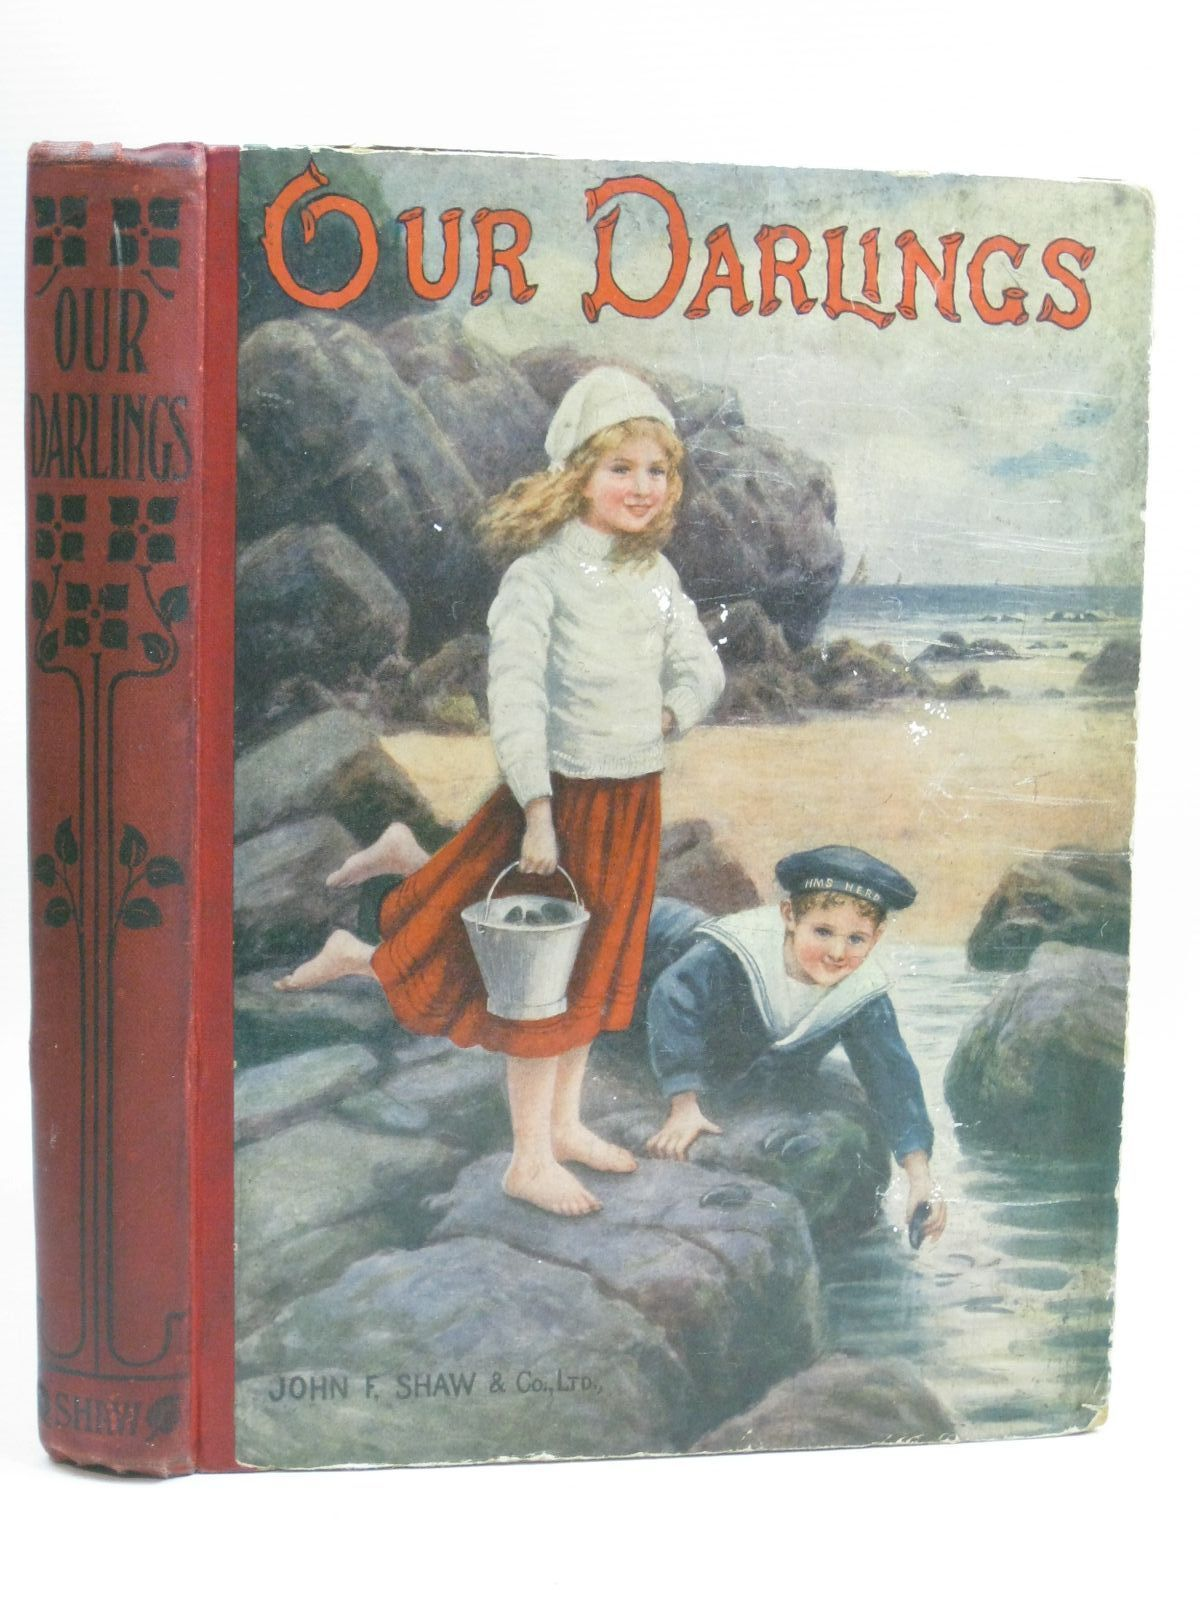 Photo of OUR DARLINGS written by Adams, W. Davenport Shaw, Catharine illustrated by Farmiloe, Edith Neilson, Harry B. Wain, Louis published by John F. Shaw (STOCK CODE: 1315885)  for sale by Stella & Rose's Books